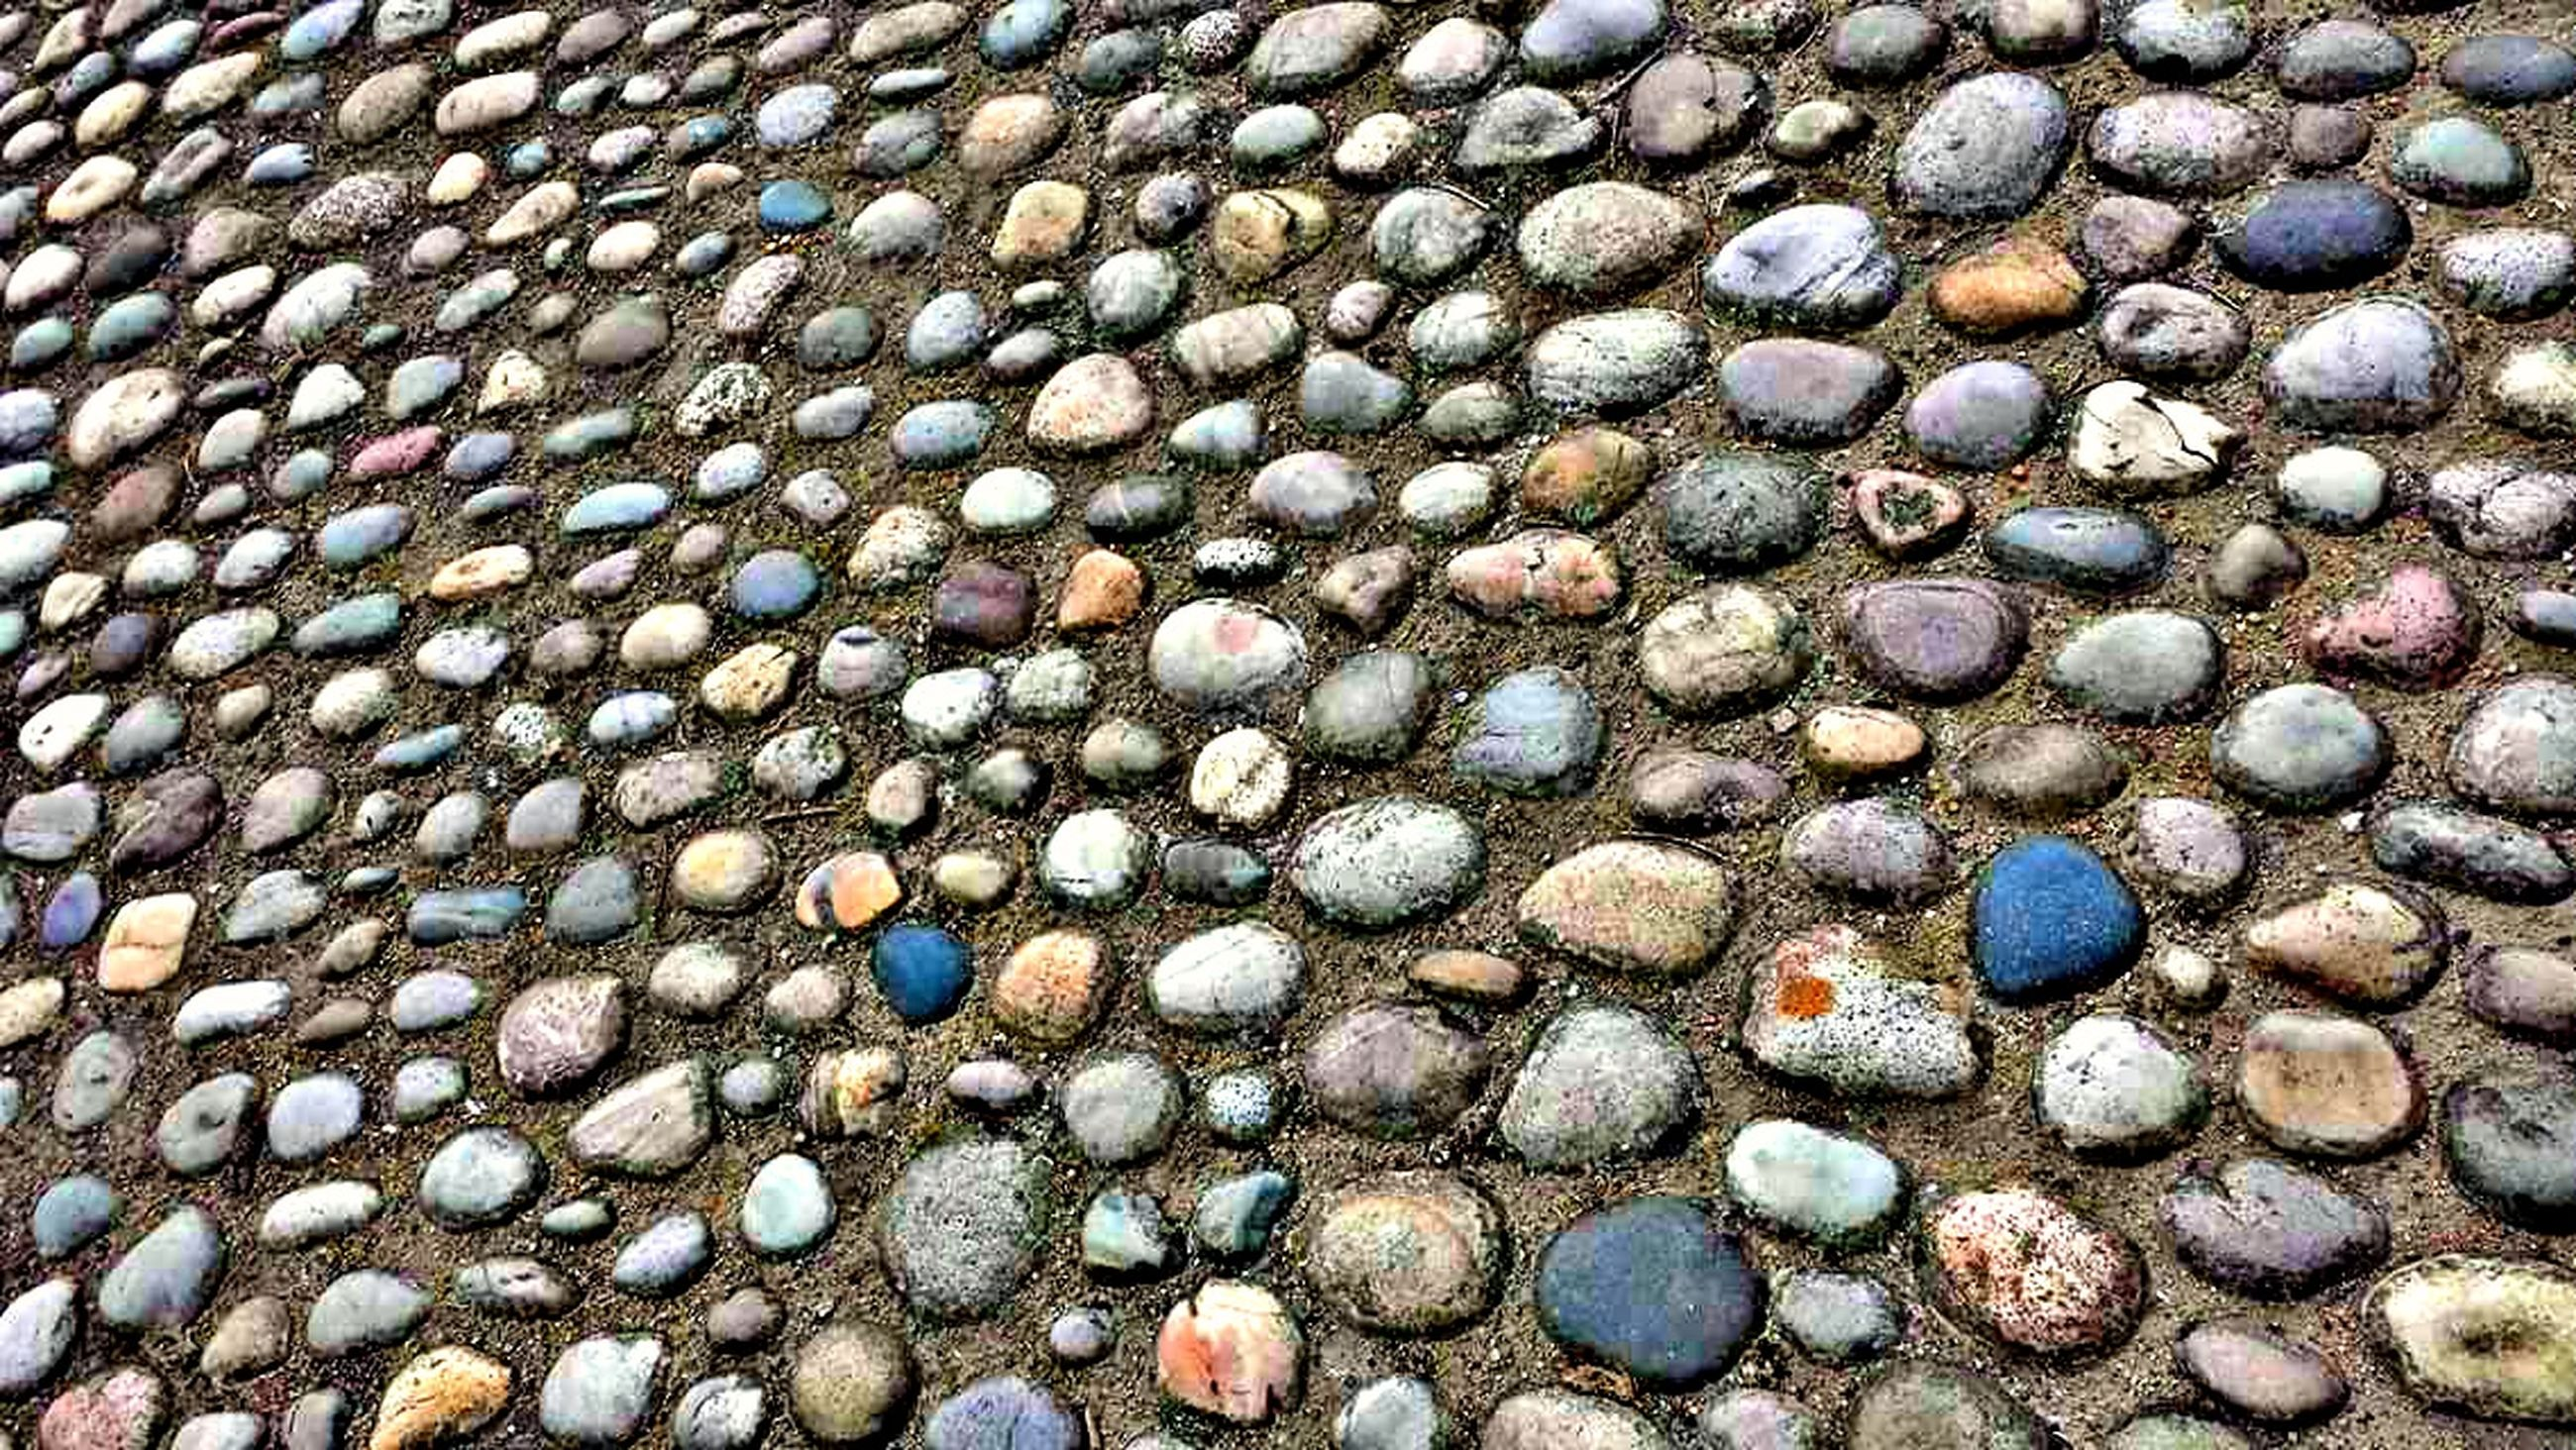 full frame, backgrounds, textured, stone - object, pebble, high angle view, close-up, day, multi colored, abundance, outdoors, stone, extreme close up, large group of objects, shore, no people, stone material, colorful, overhead view